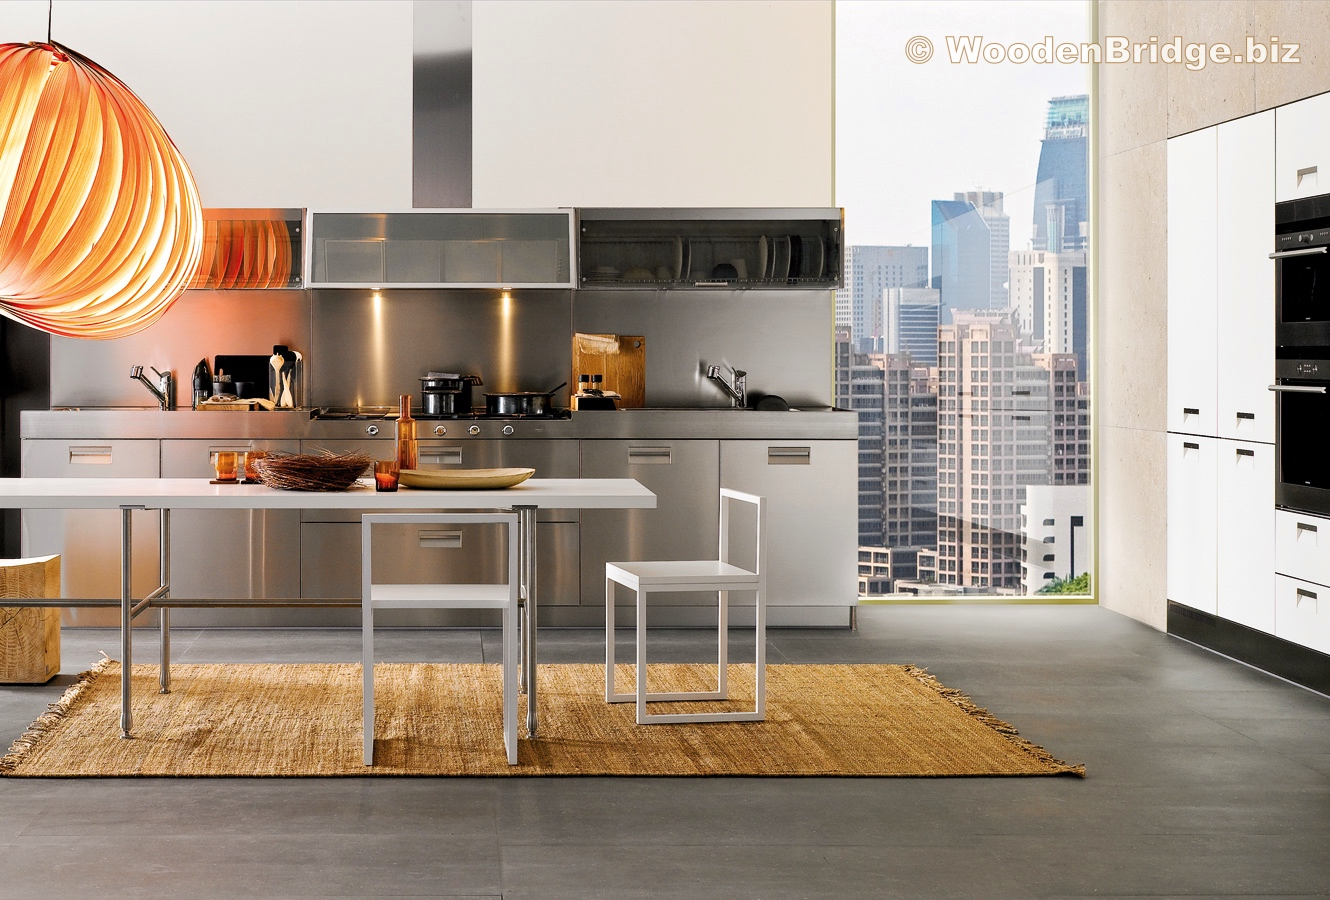 Modern Stainless Steel Kitchen Cabinets Ideas - 1330 x 900